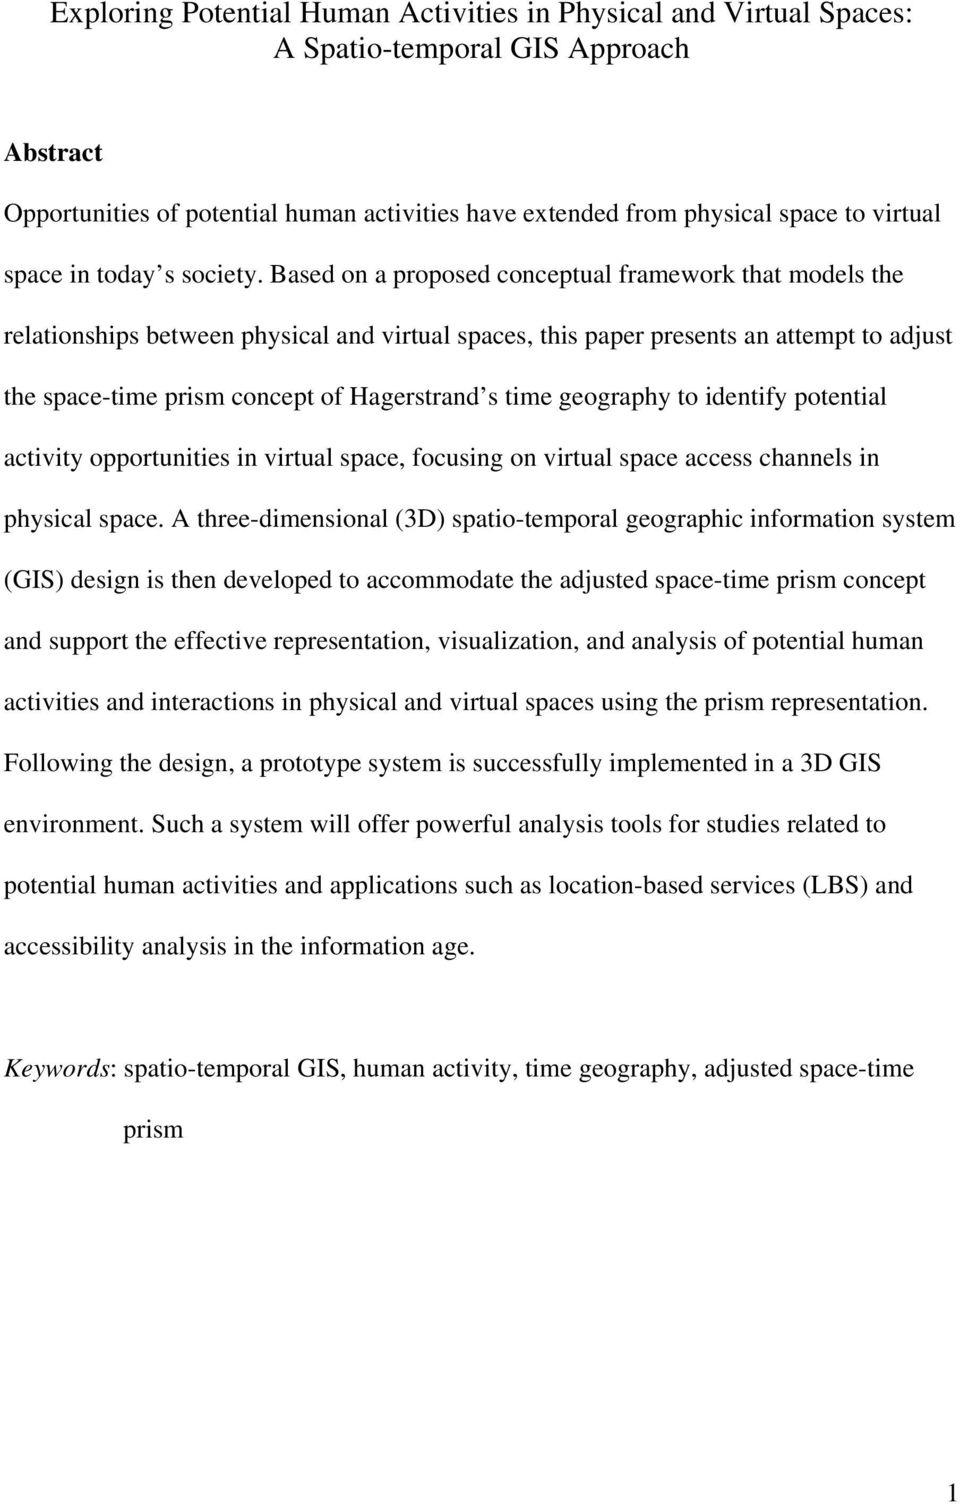 Based on a proposed conceptual framework that models the relationships between physical and virtual spaces, this paper presents an attempt to adjust the space-time prism concept of Hagerstrand s time